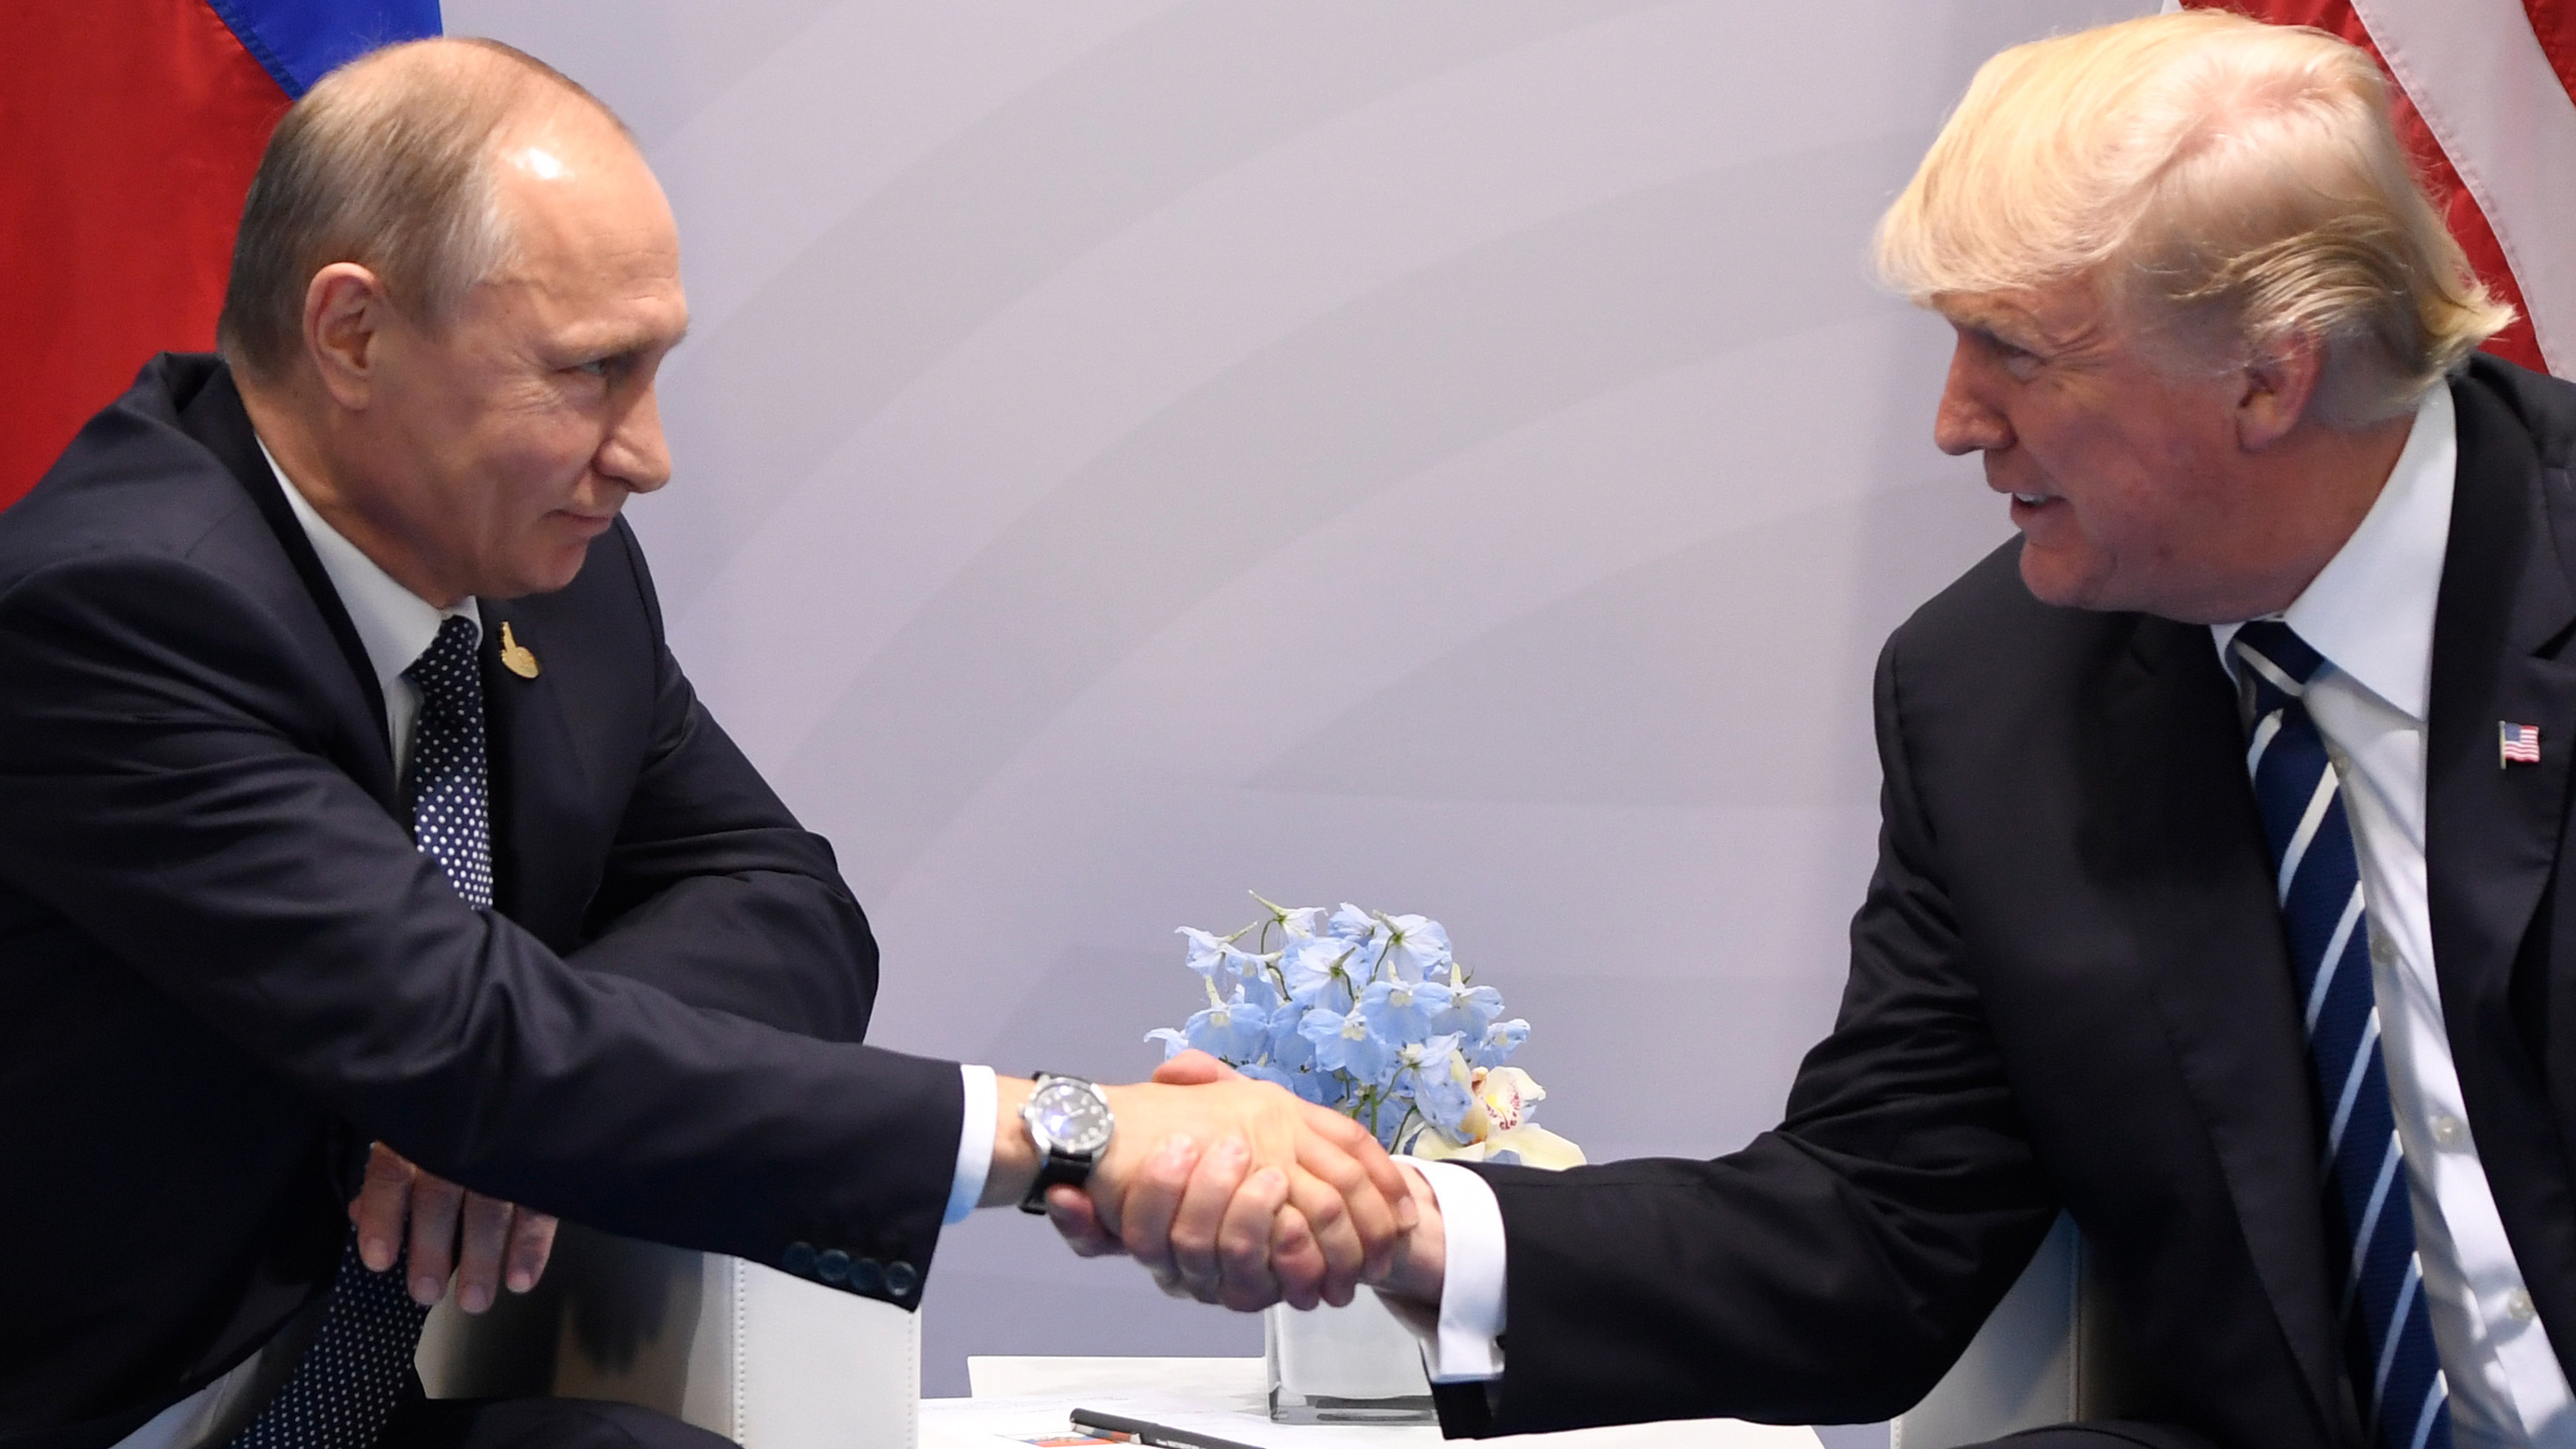 US President Donald Trump (R) and Russia's President Vladimir Putin shake hands during a meeting on the sidelines of the G20 Summit in Hamburg, Germany, on July 7, 2017.